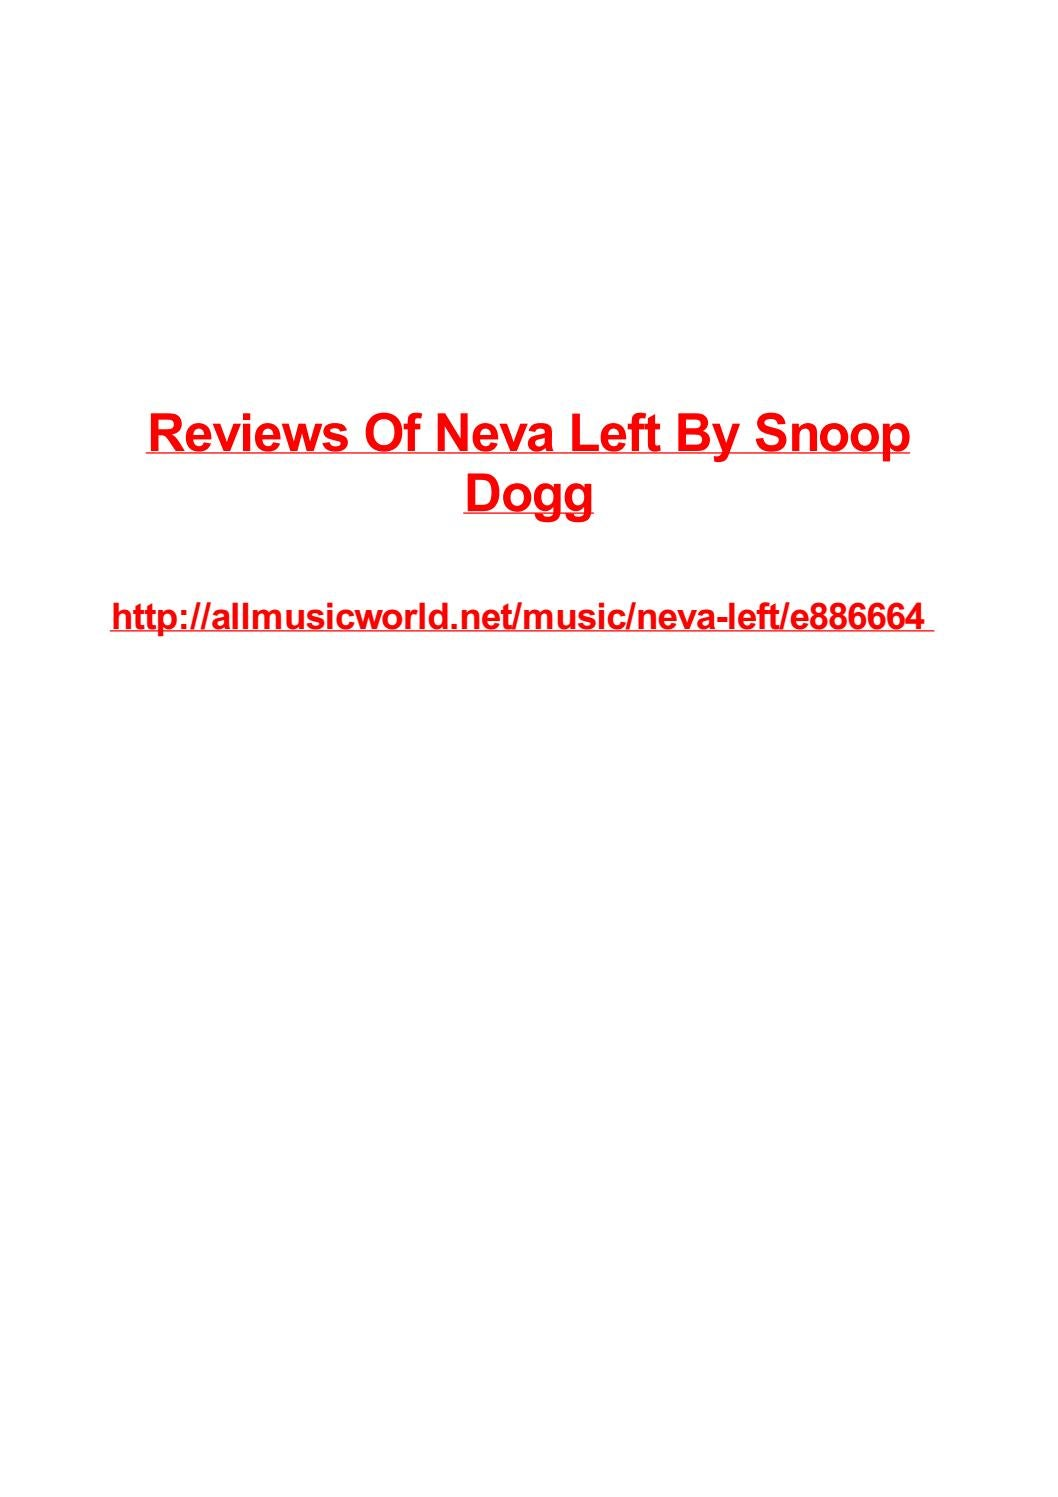 Reviews Of Neva Left By Snoop Dogg By Max Polansky Issuu